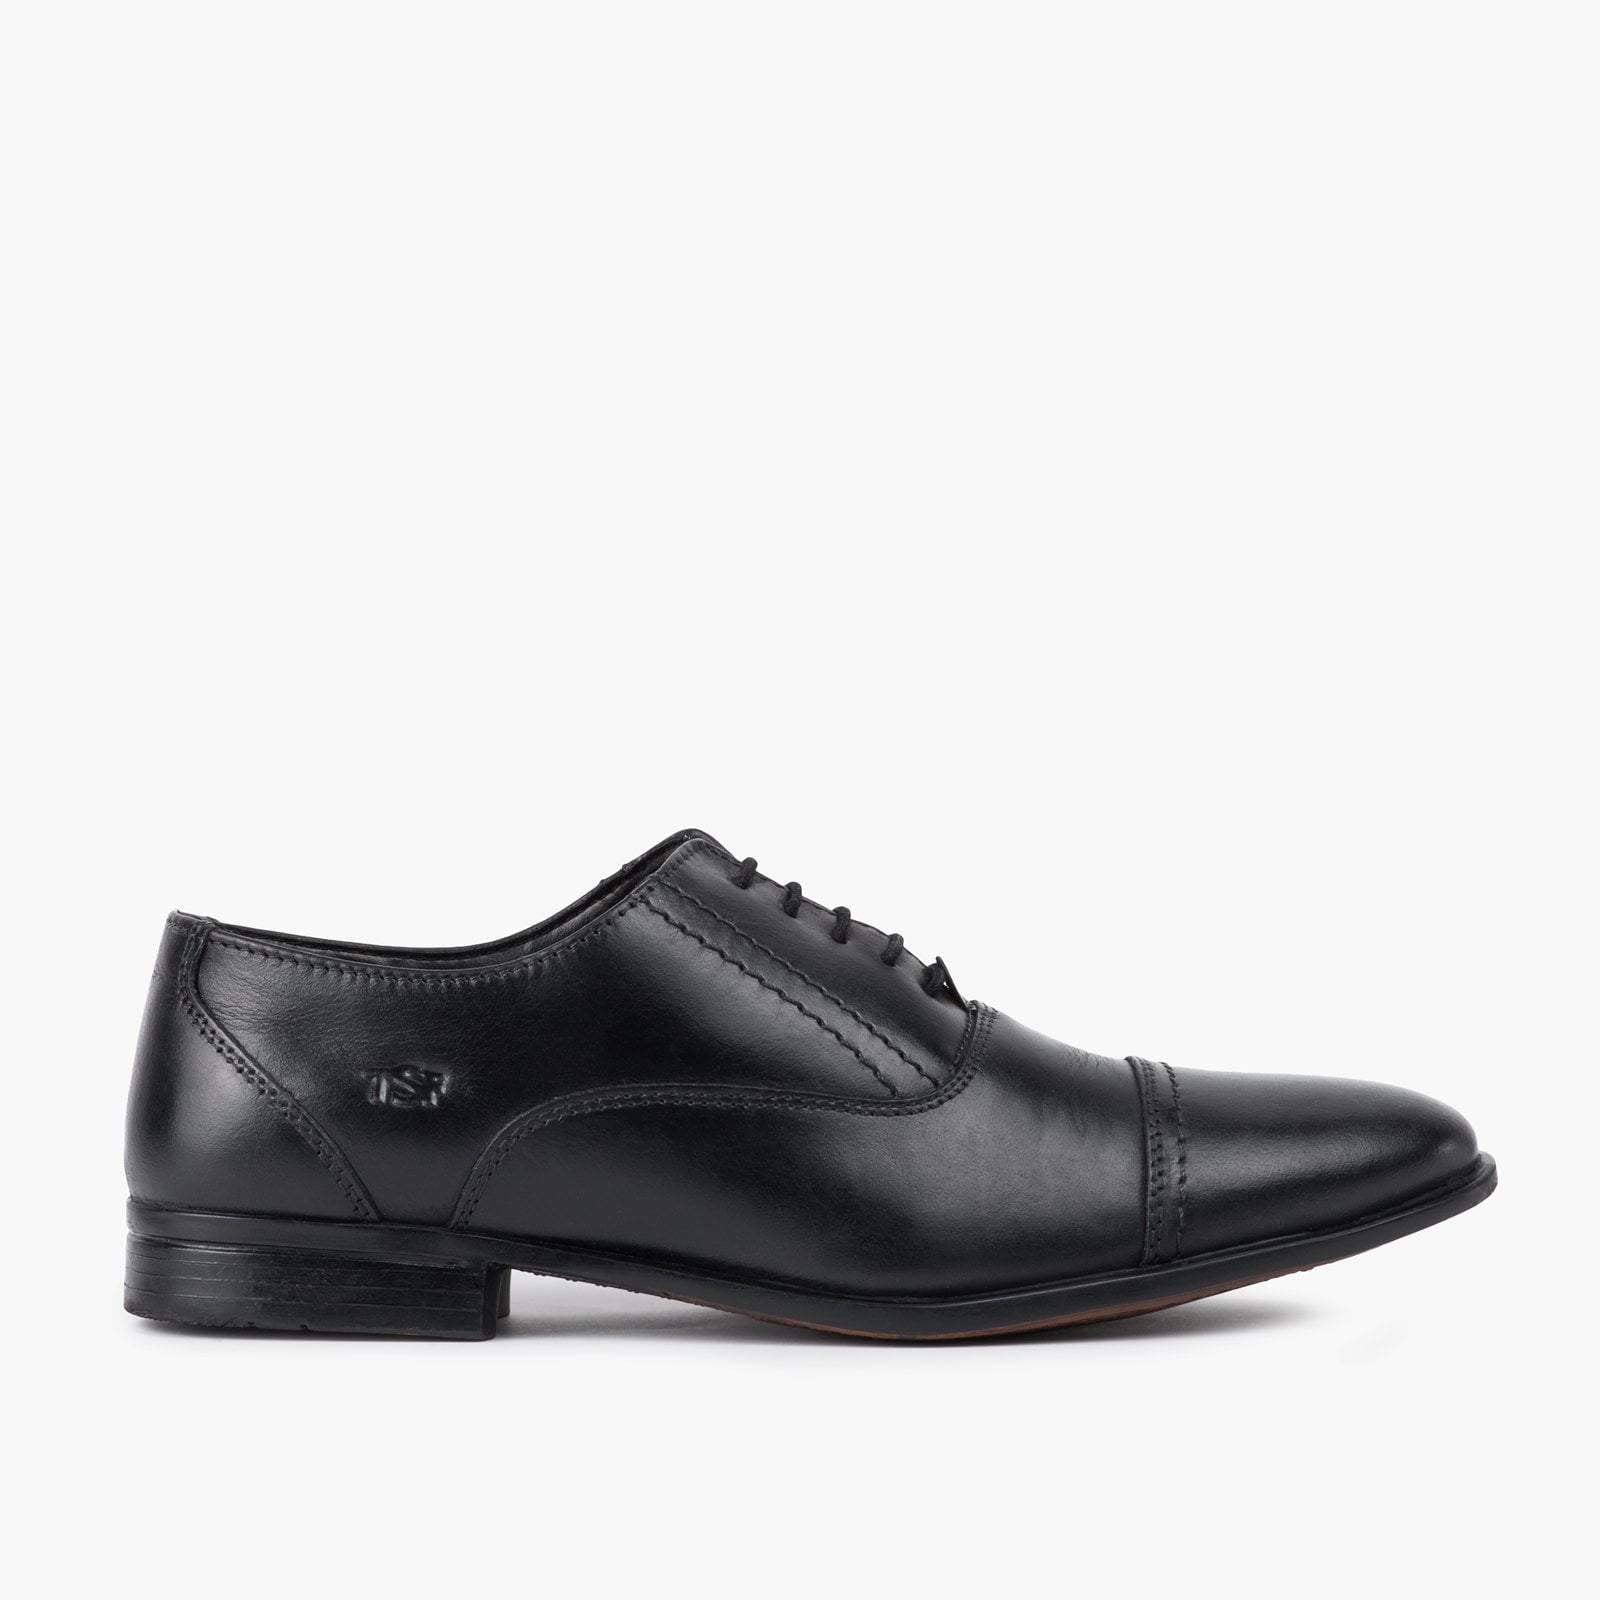 Redfoot Shoes Footwear UK 6 / EURO 39 / US 7 / Black / Leather MENS BLACK LEATHER OXFORD TOE CAP